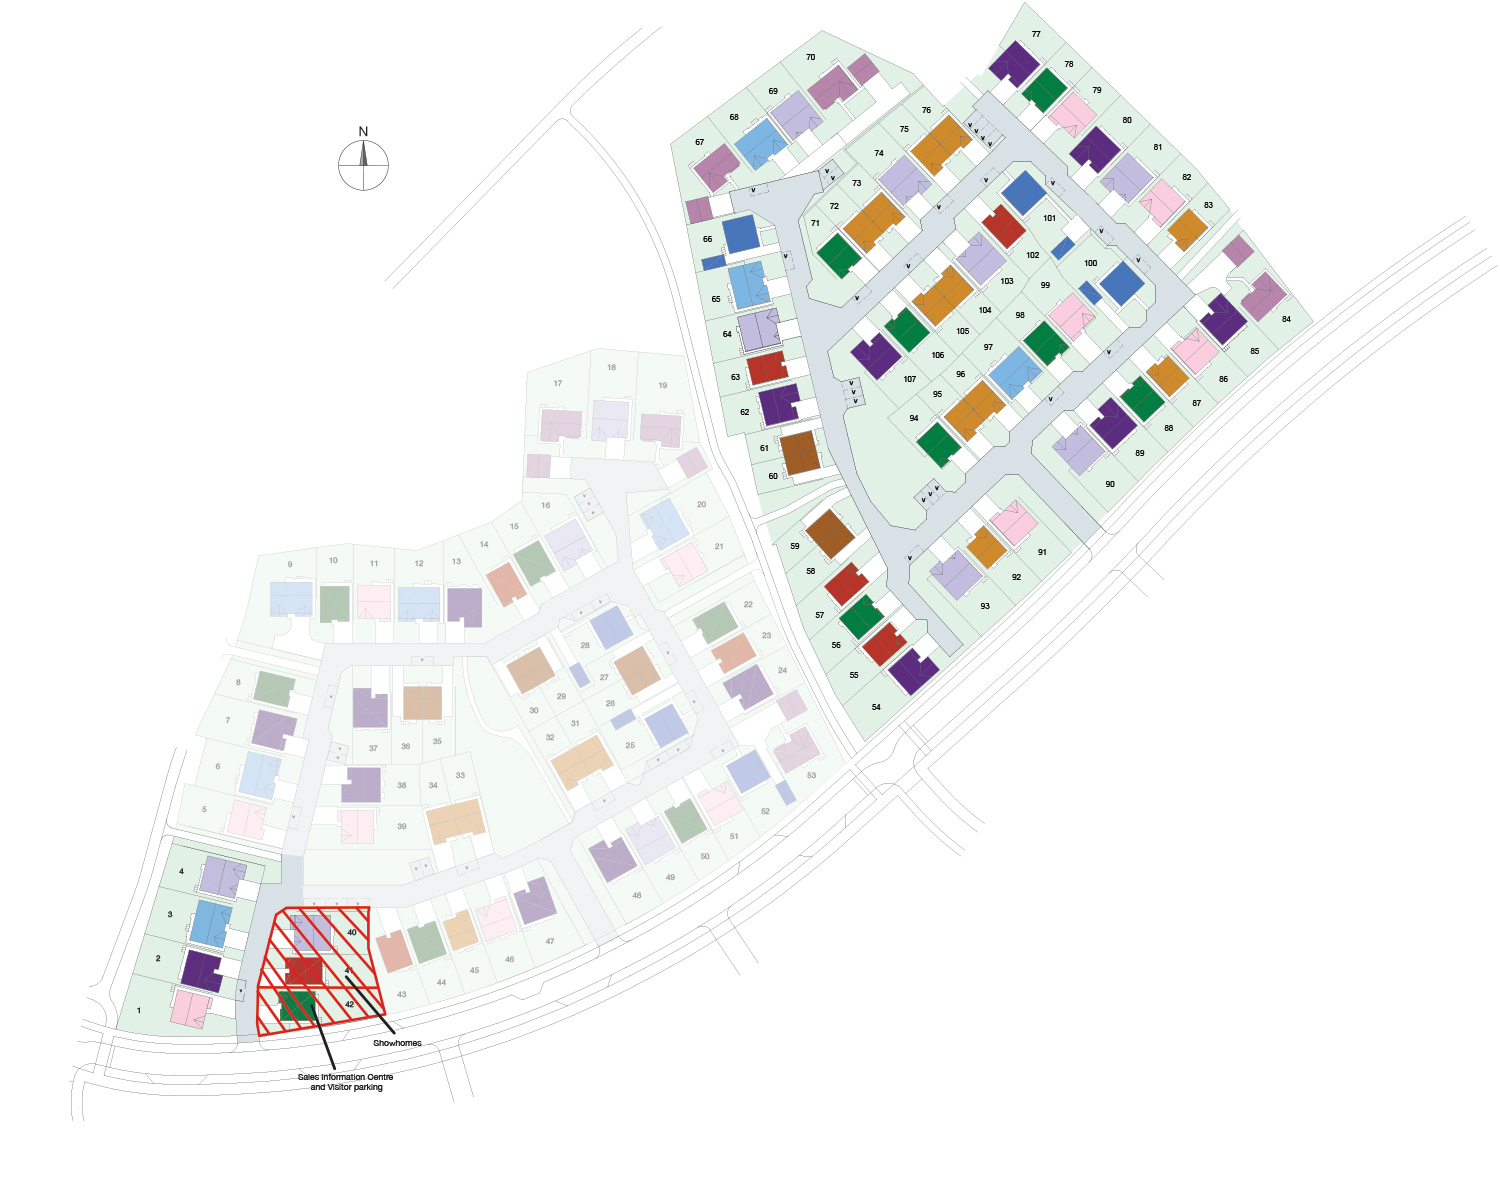 Taylor Wimpey Floor Plans Taylor Wimpey At Calderwood New Homes For Sale In East